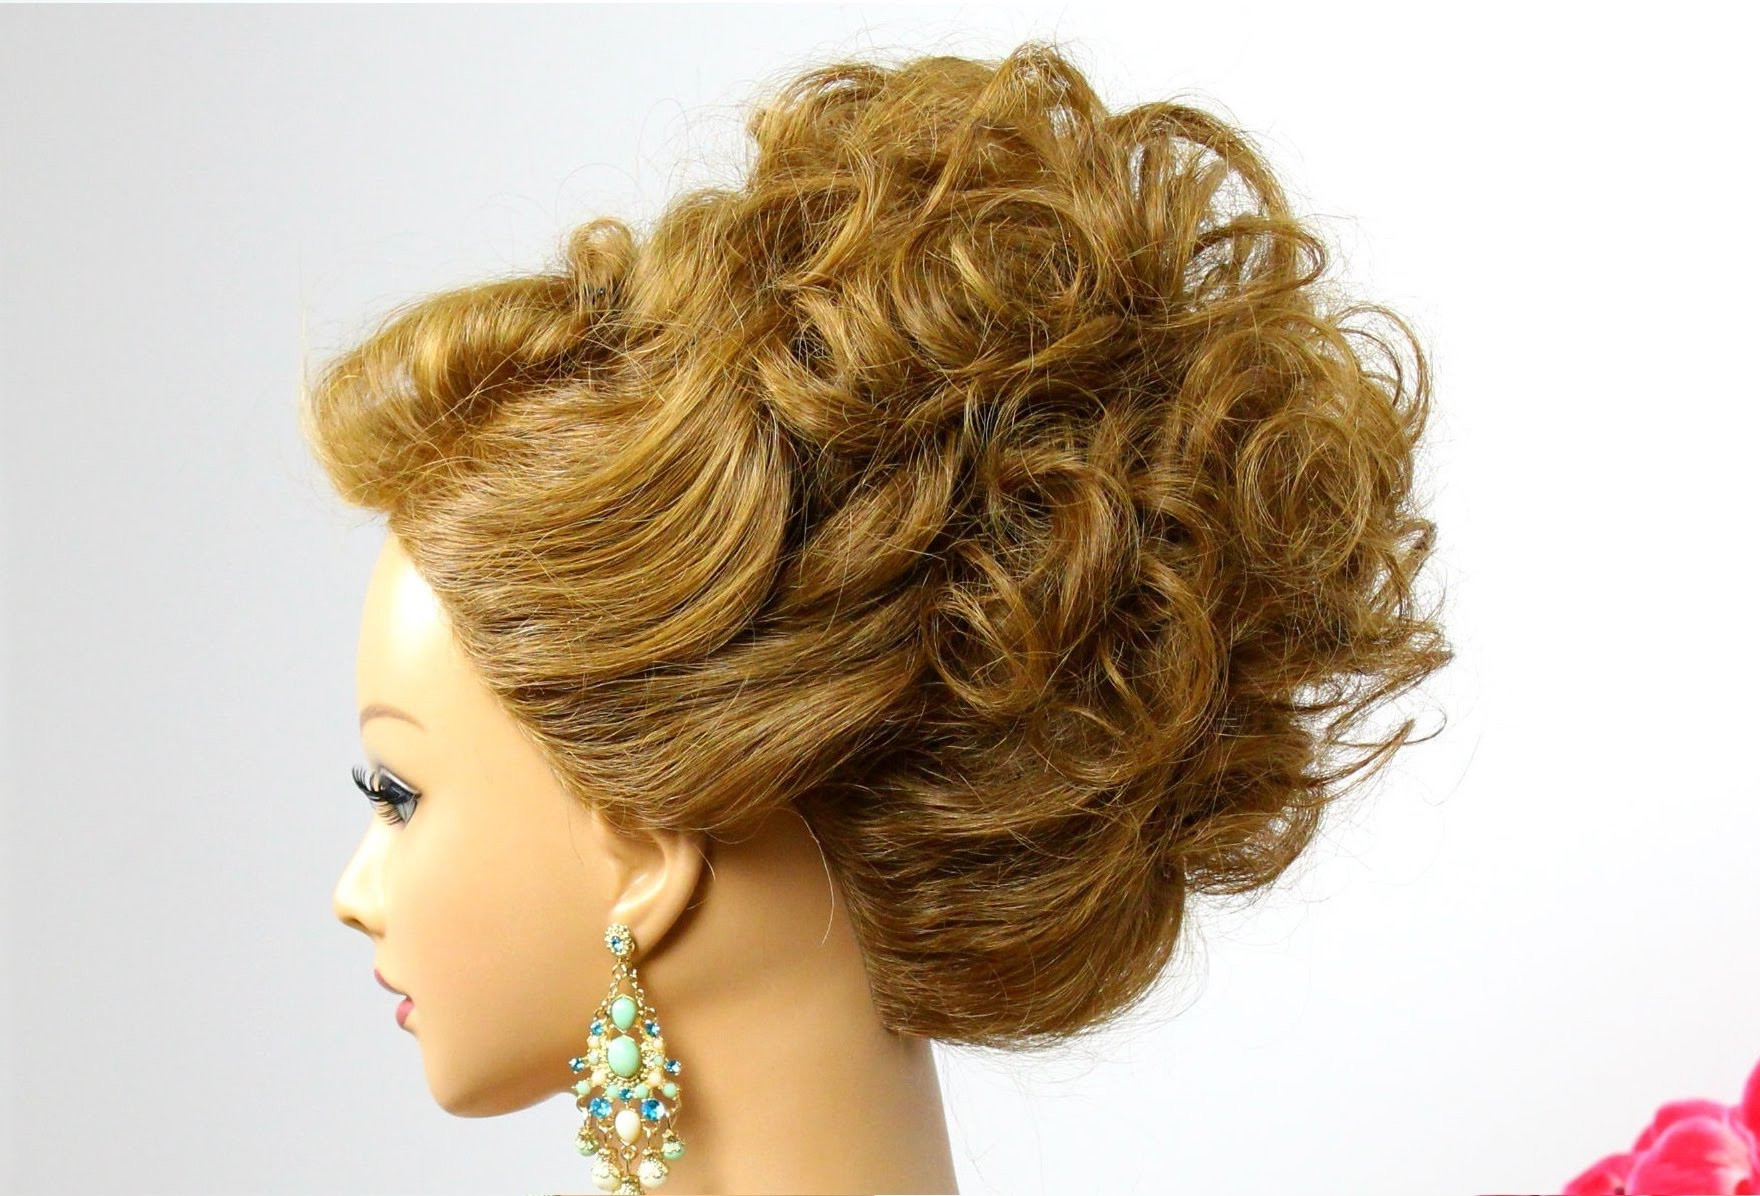 Homecoming Updo Hairstyles Fresh Updo Hairstyles For Working Out For Preferred Homecoming Medium Hairstyles (View 13 of 20)